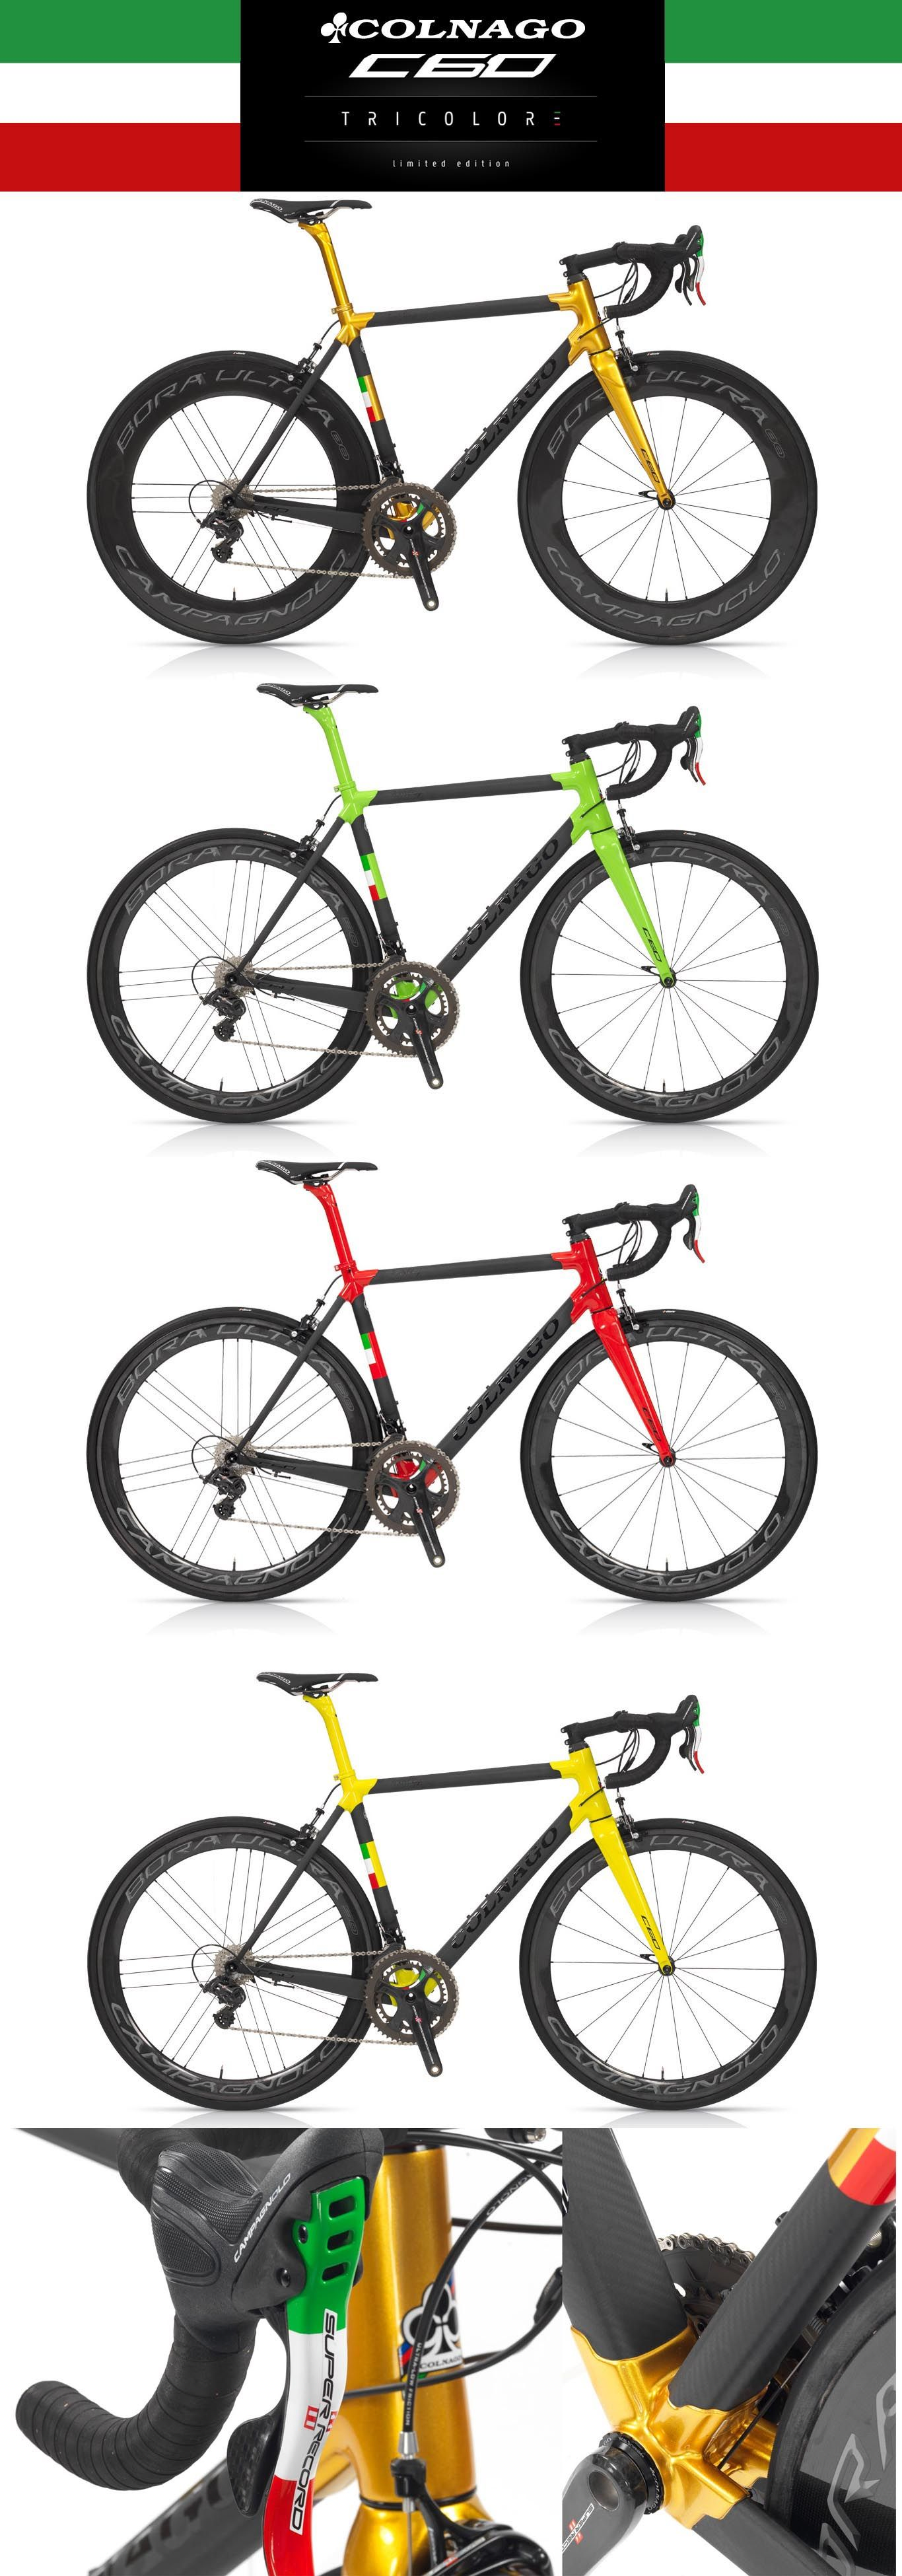 2016 Colnago C60 Tricolore, limited edition of only 100. Special Italian flag details like the Campagnolo Super Record right shifter and crank, and the seattube.